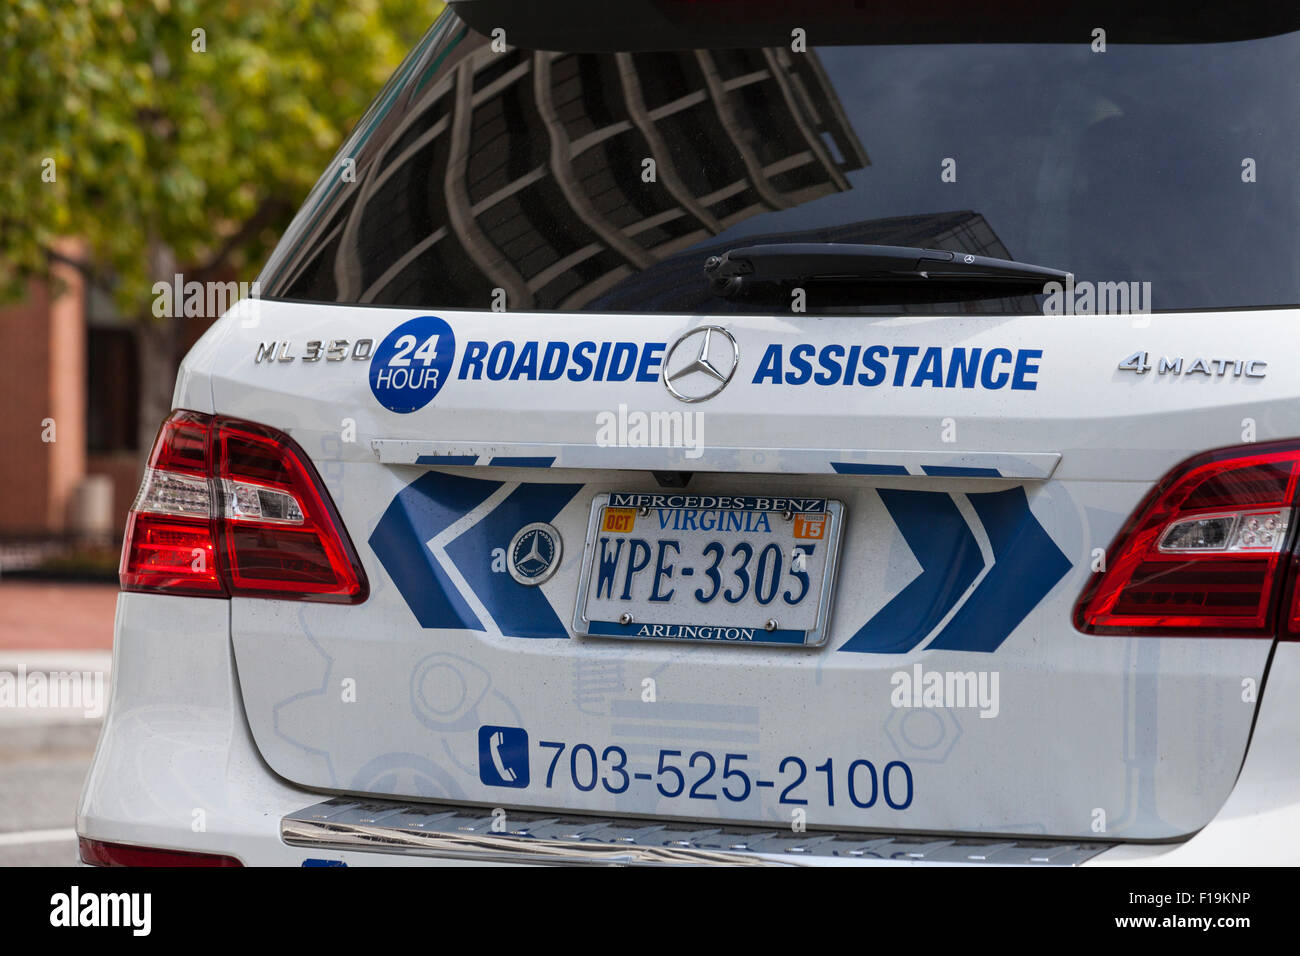 Mercedes Benz 24hr Roadside Assistance Vehicle   USA   Stock Image